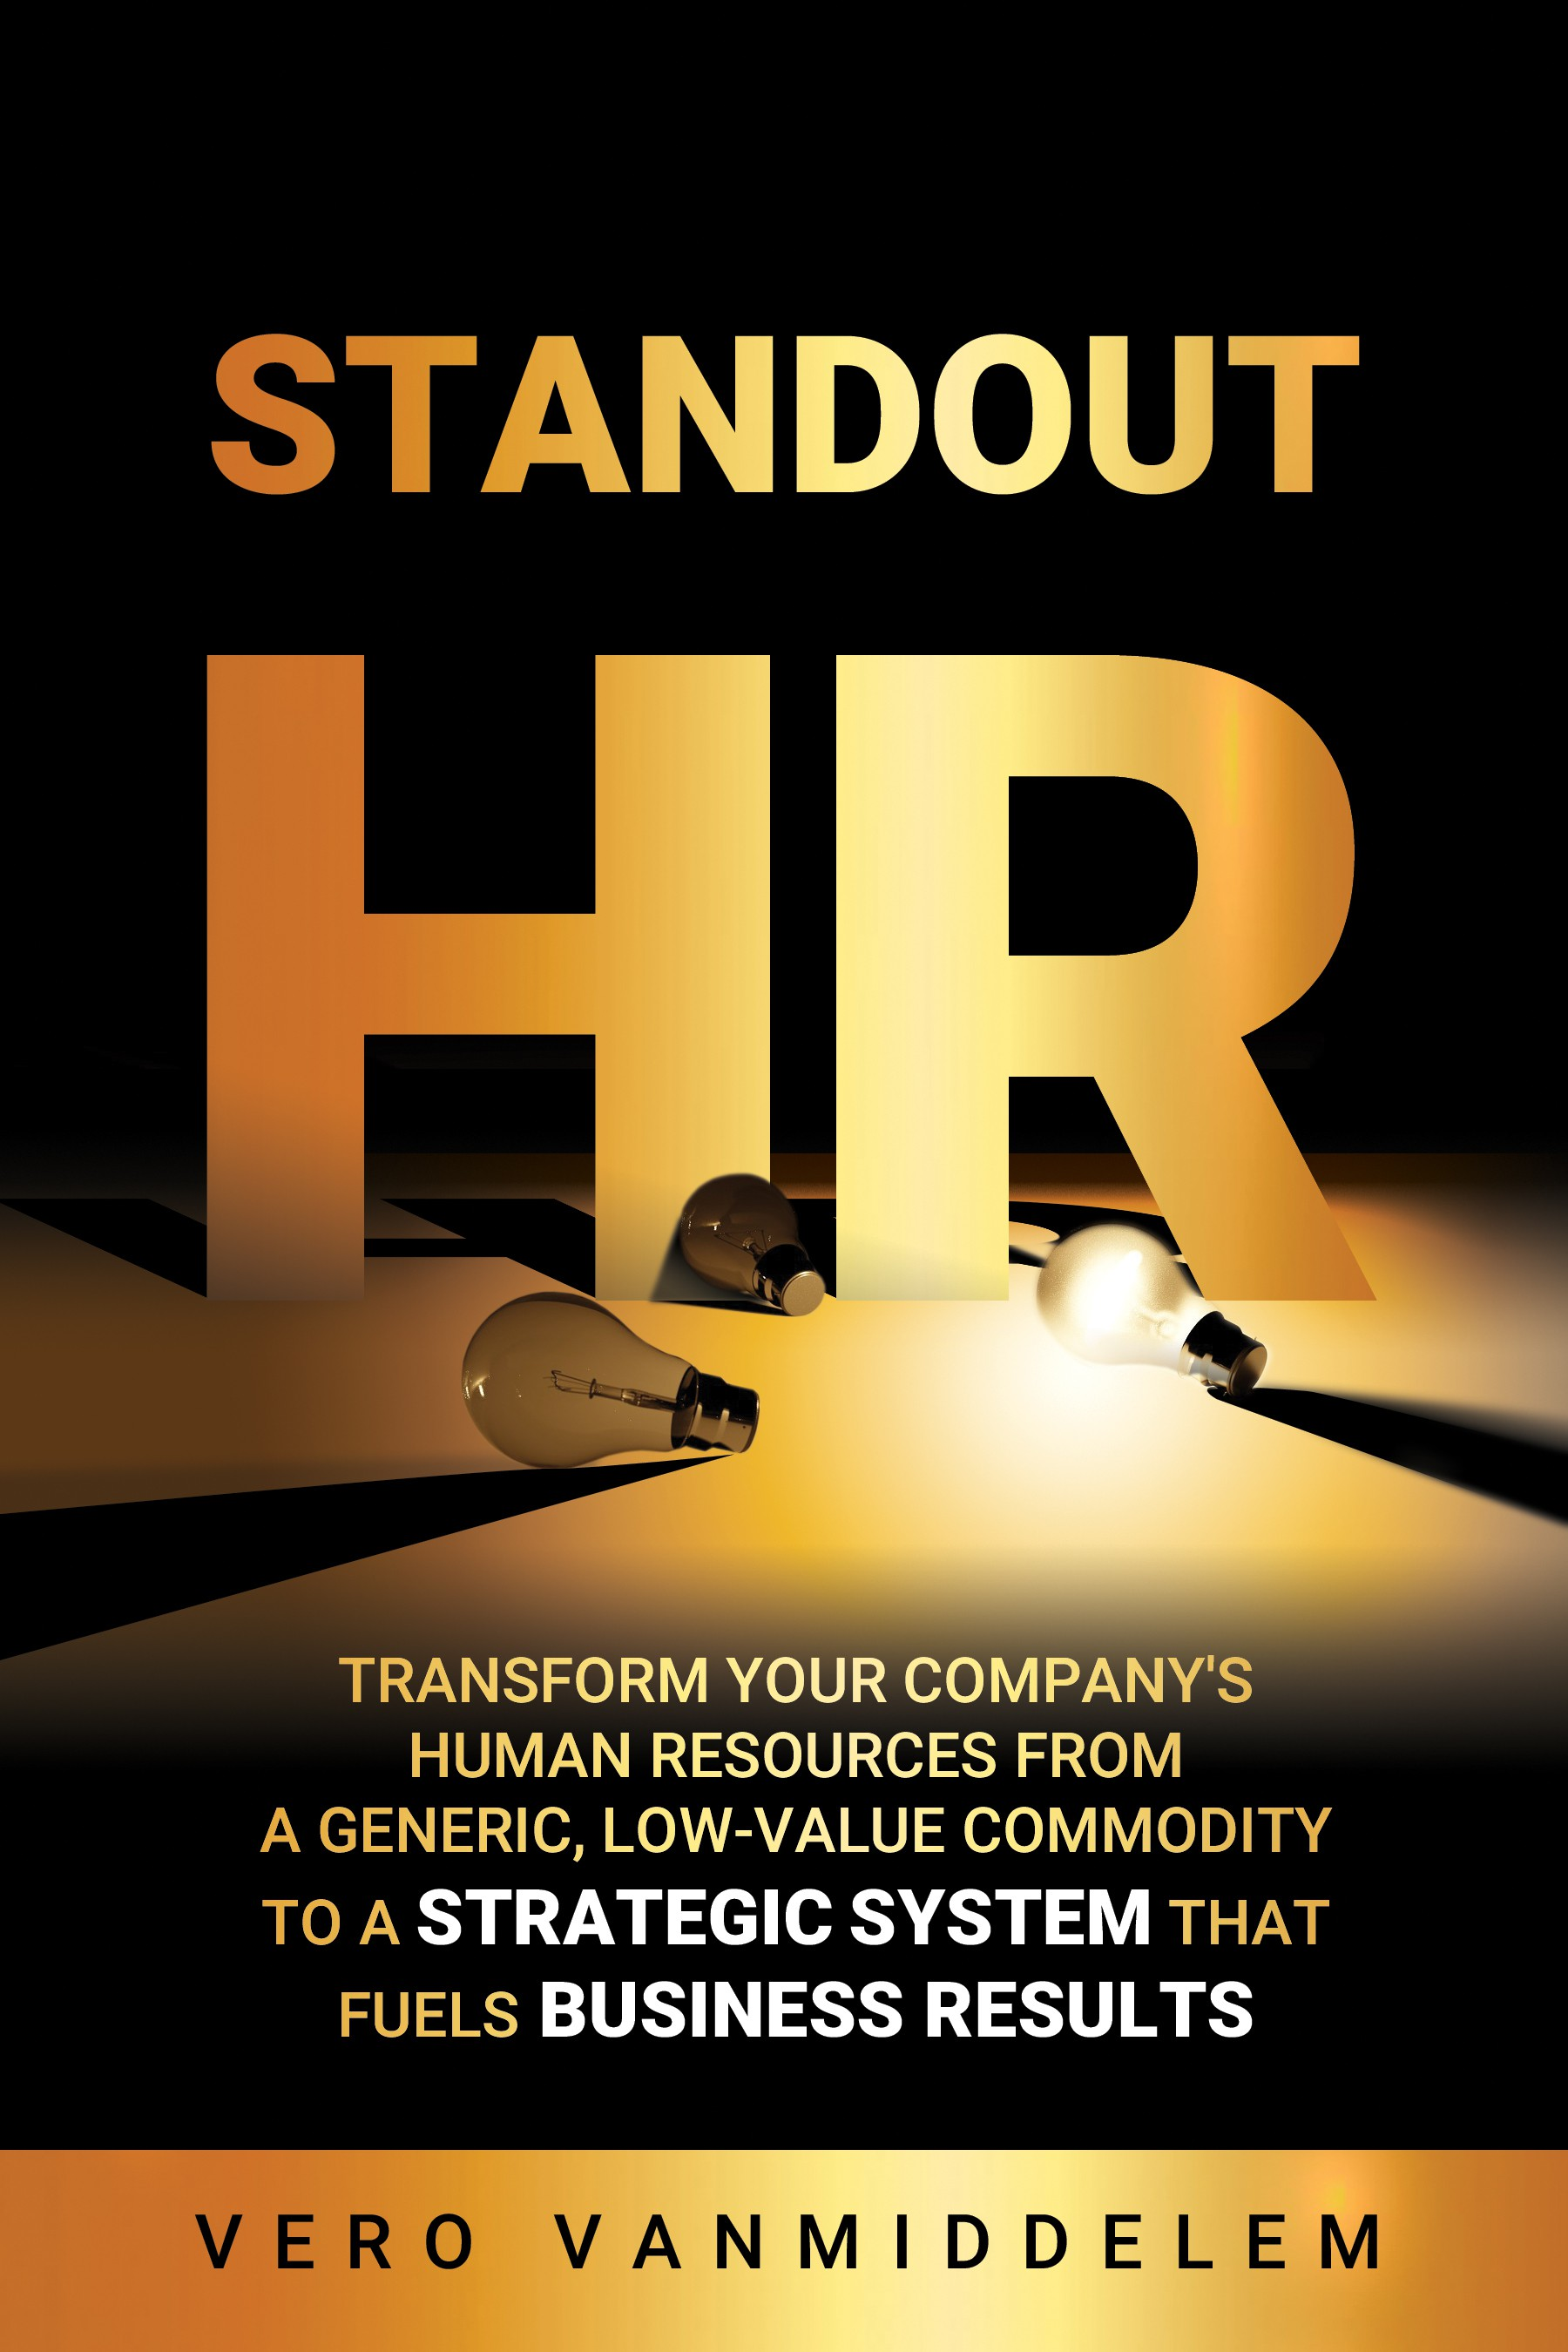 Can you create a Standout Cover Design for a book called Standout HR ?